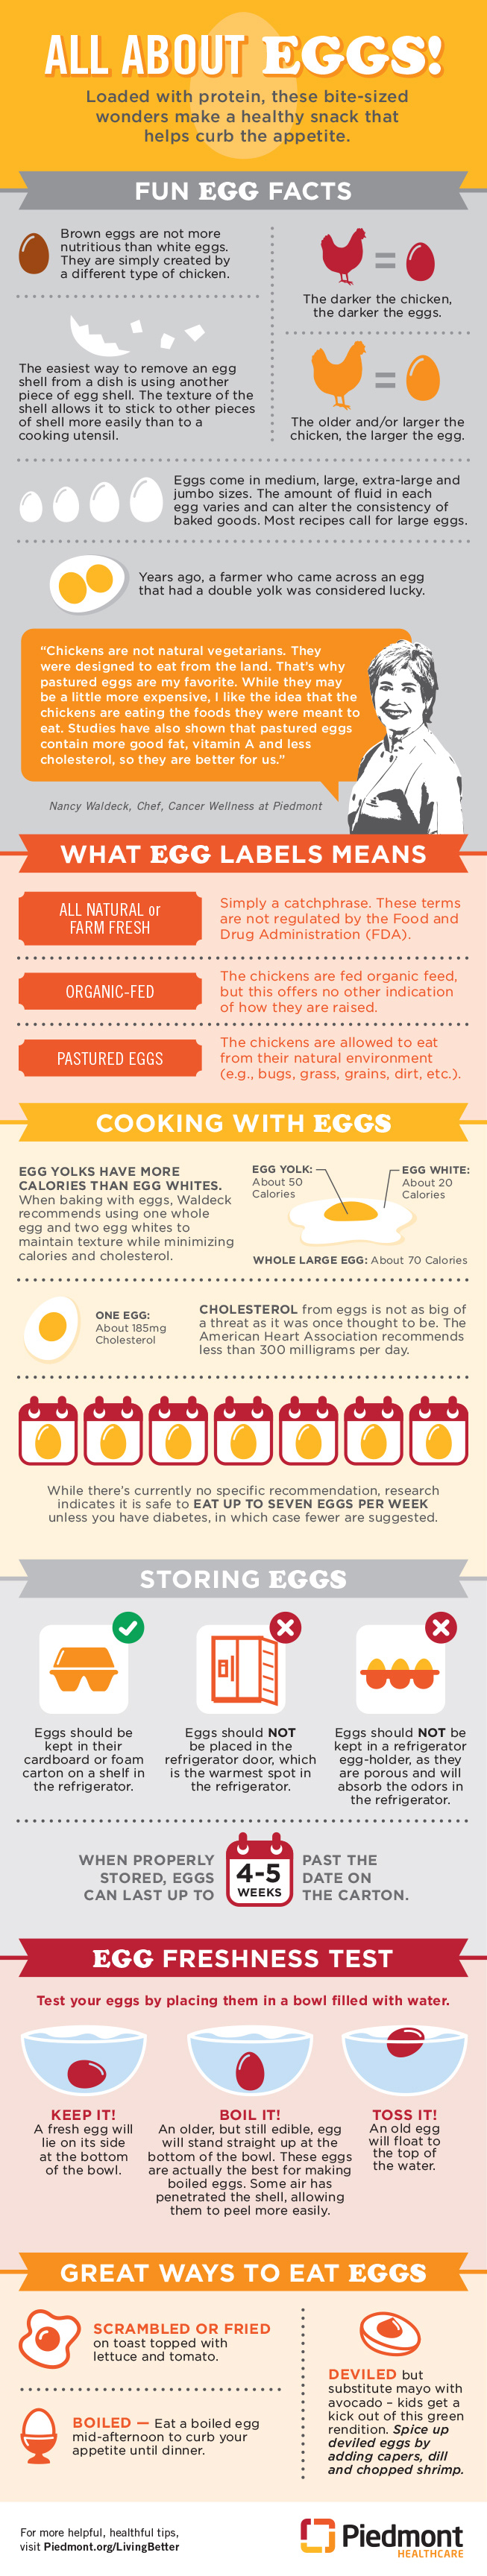 All about eggs! graphic